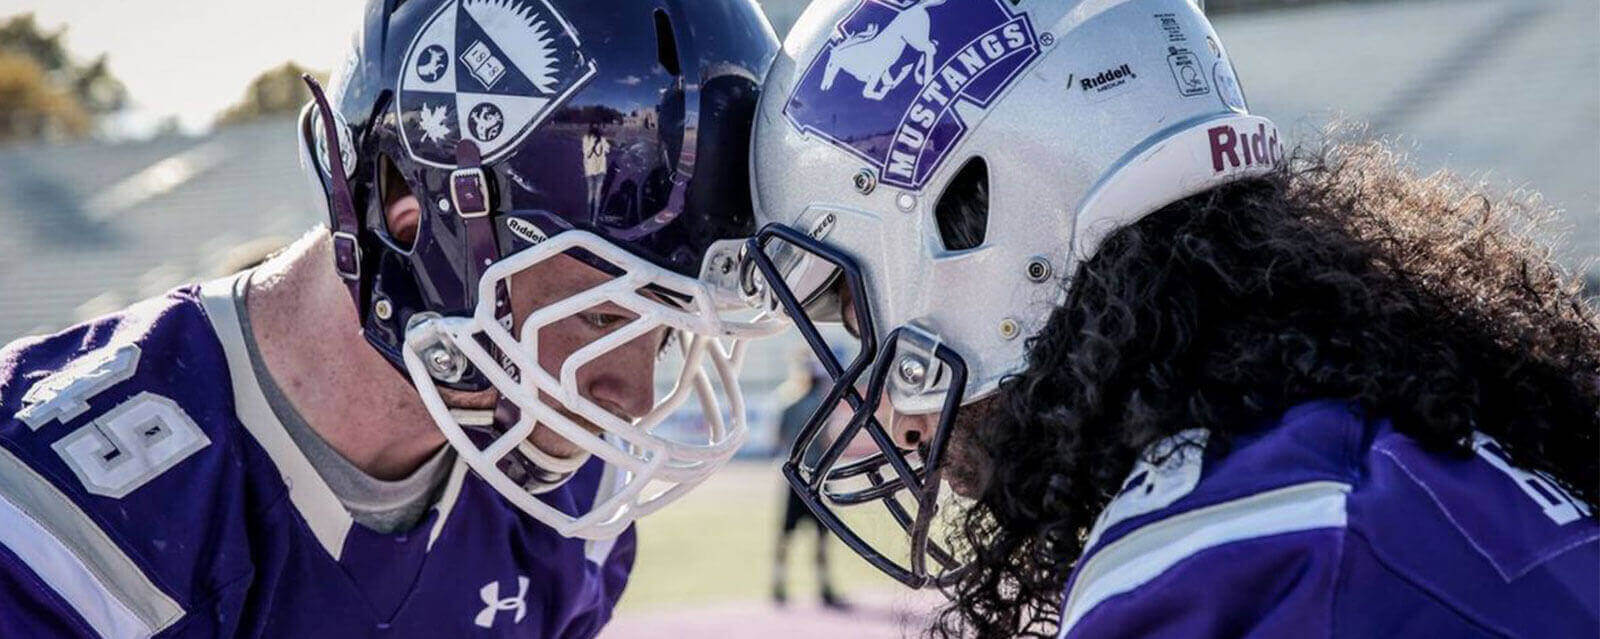 Two Football Players from Western University huddled together preparing for a game